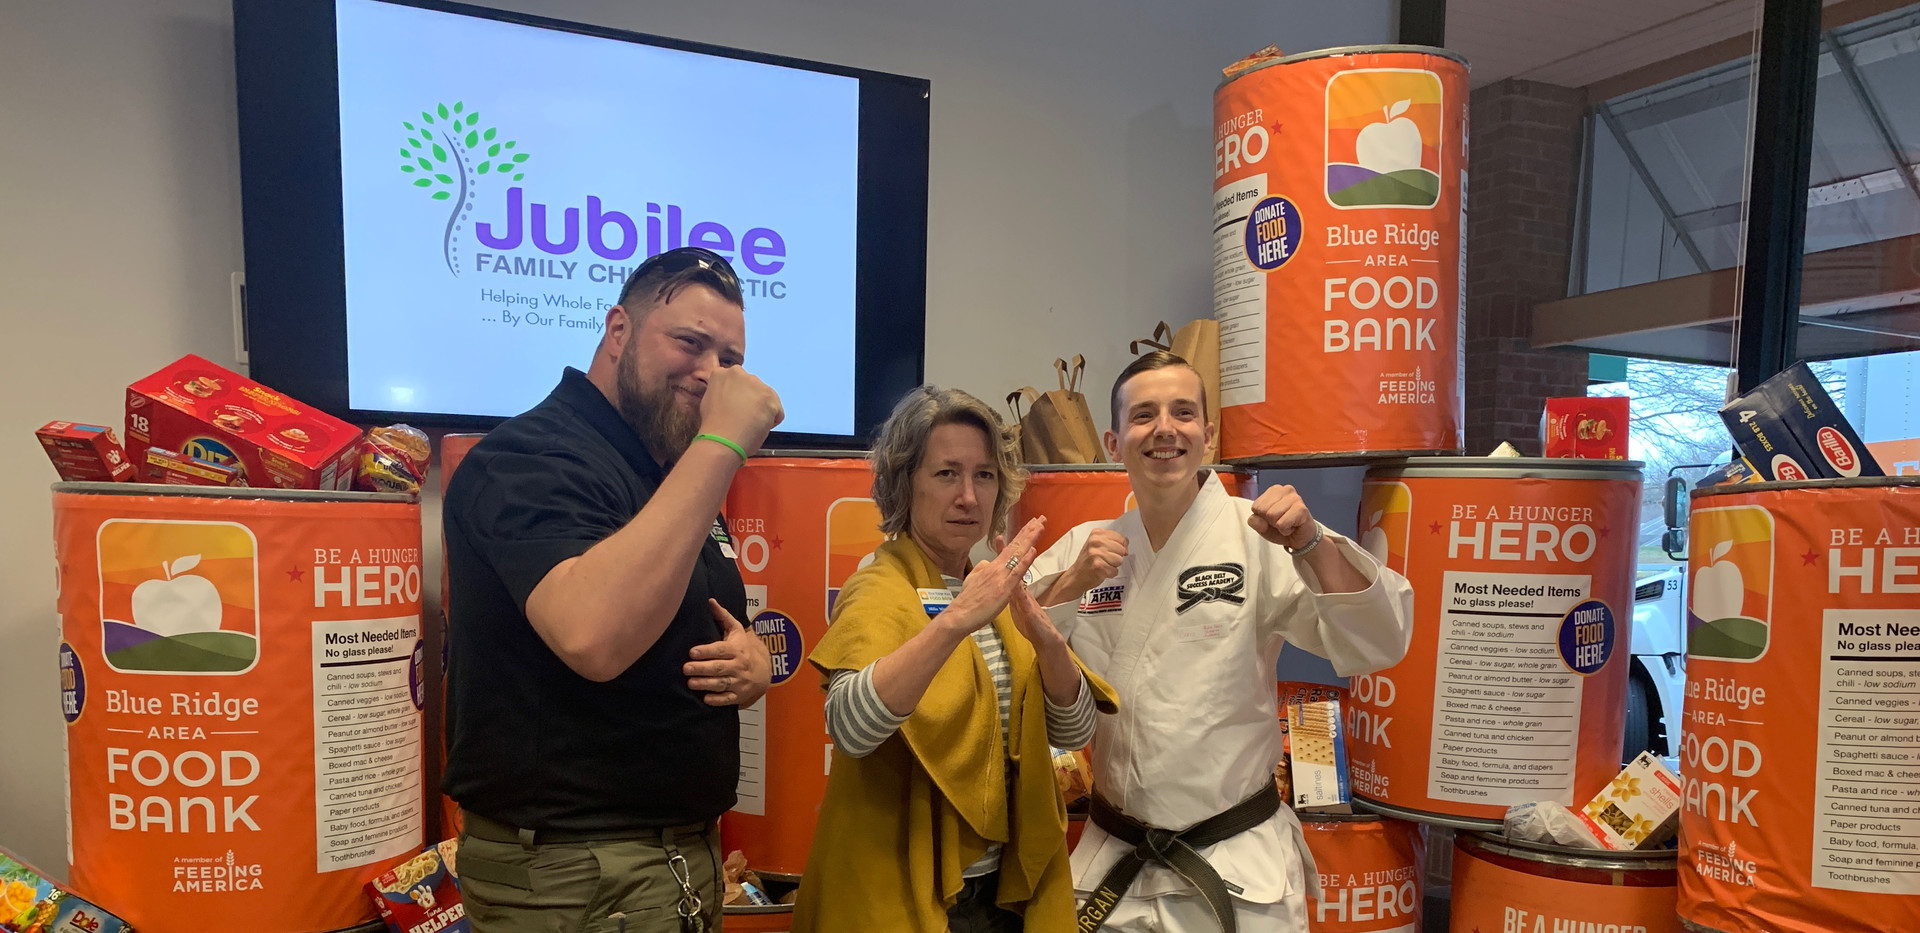 Jubilee Family Chiropractic 2020 Blue Ridge Food Drive. 038